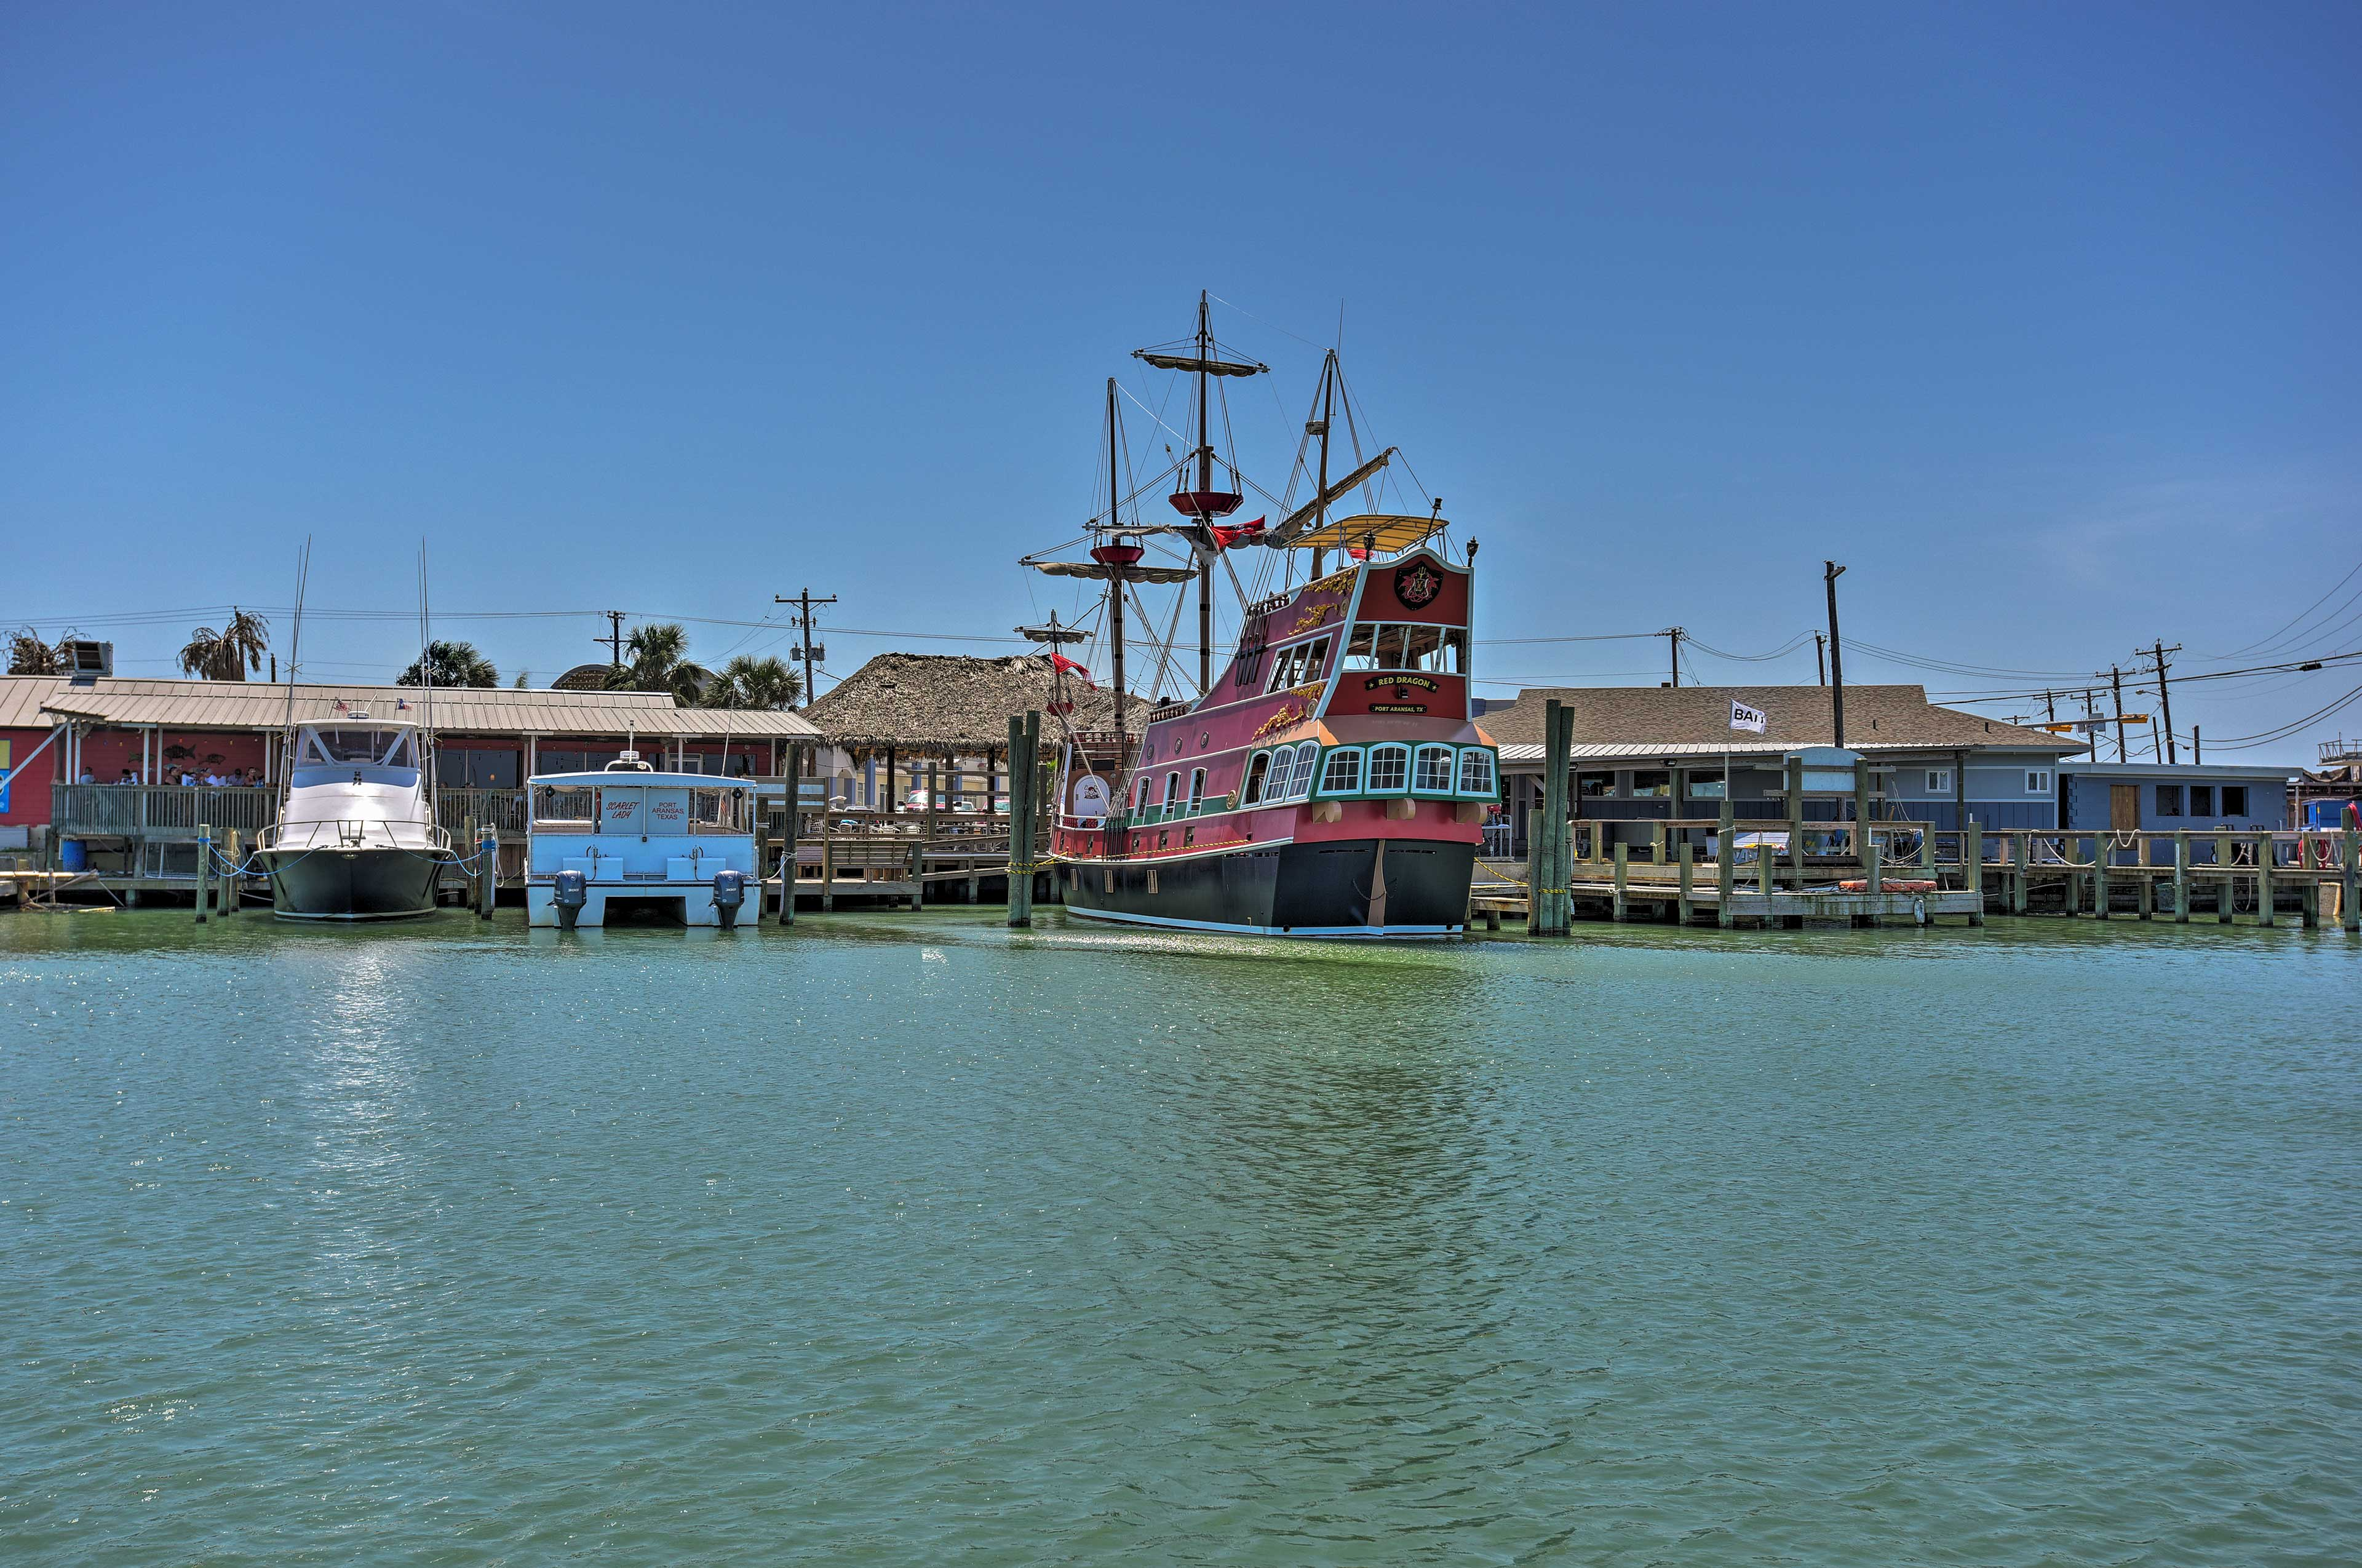 Tour the coast on the Red Dragon Pirate Ship!